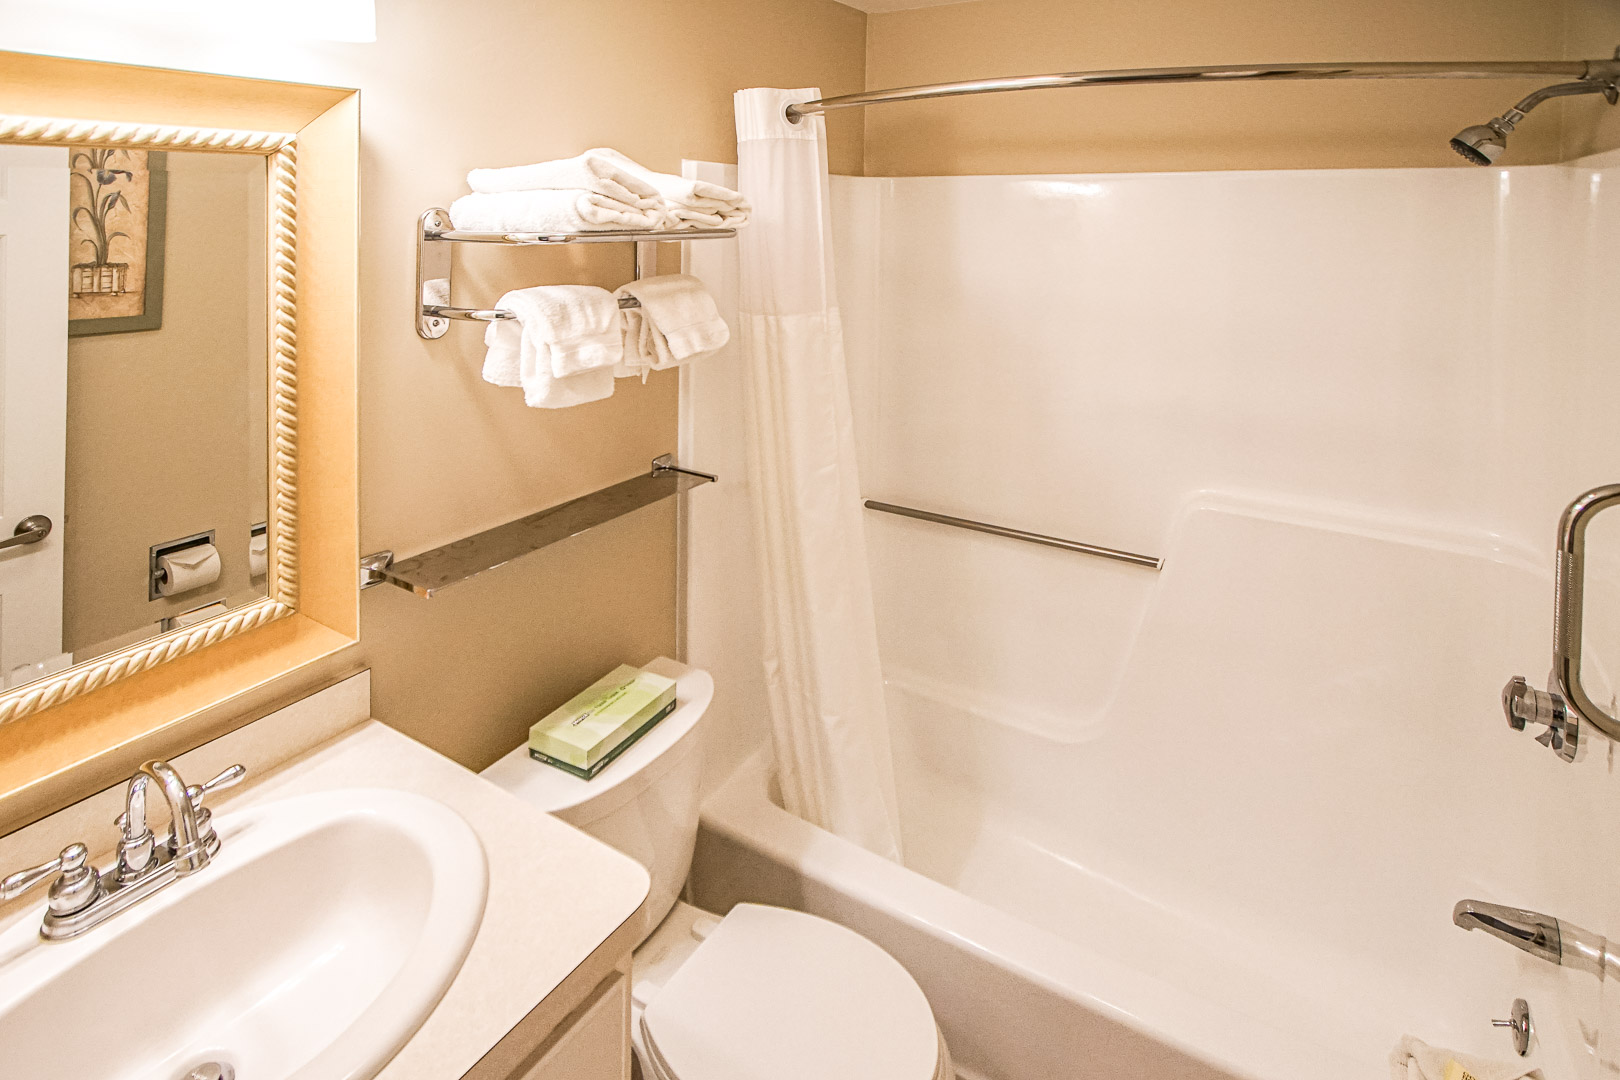 A clean and standard bathroom at VRI's Cape Winds Resort in Massachusetts.